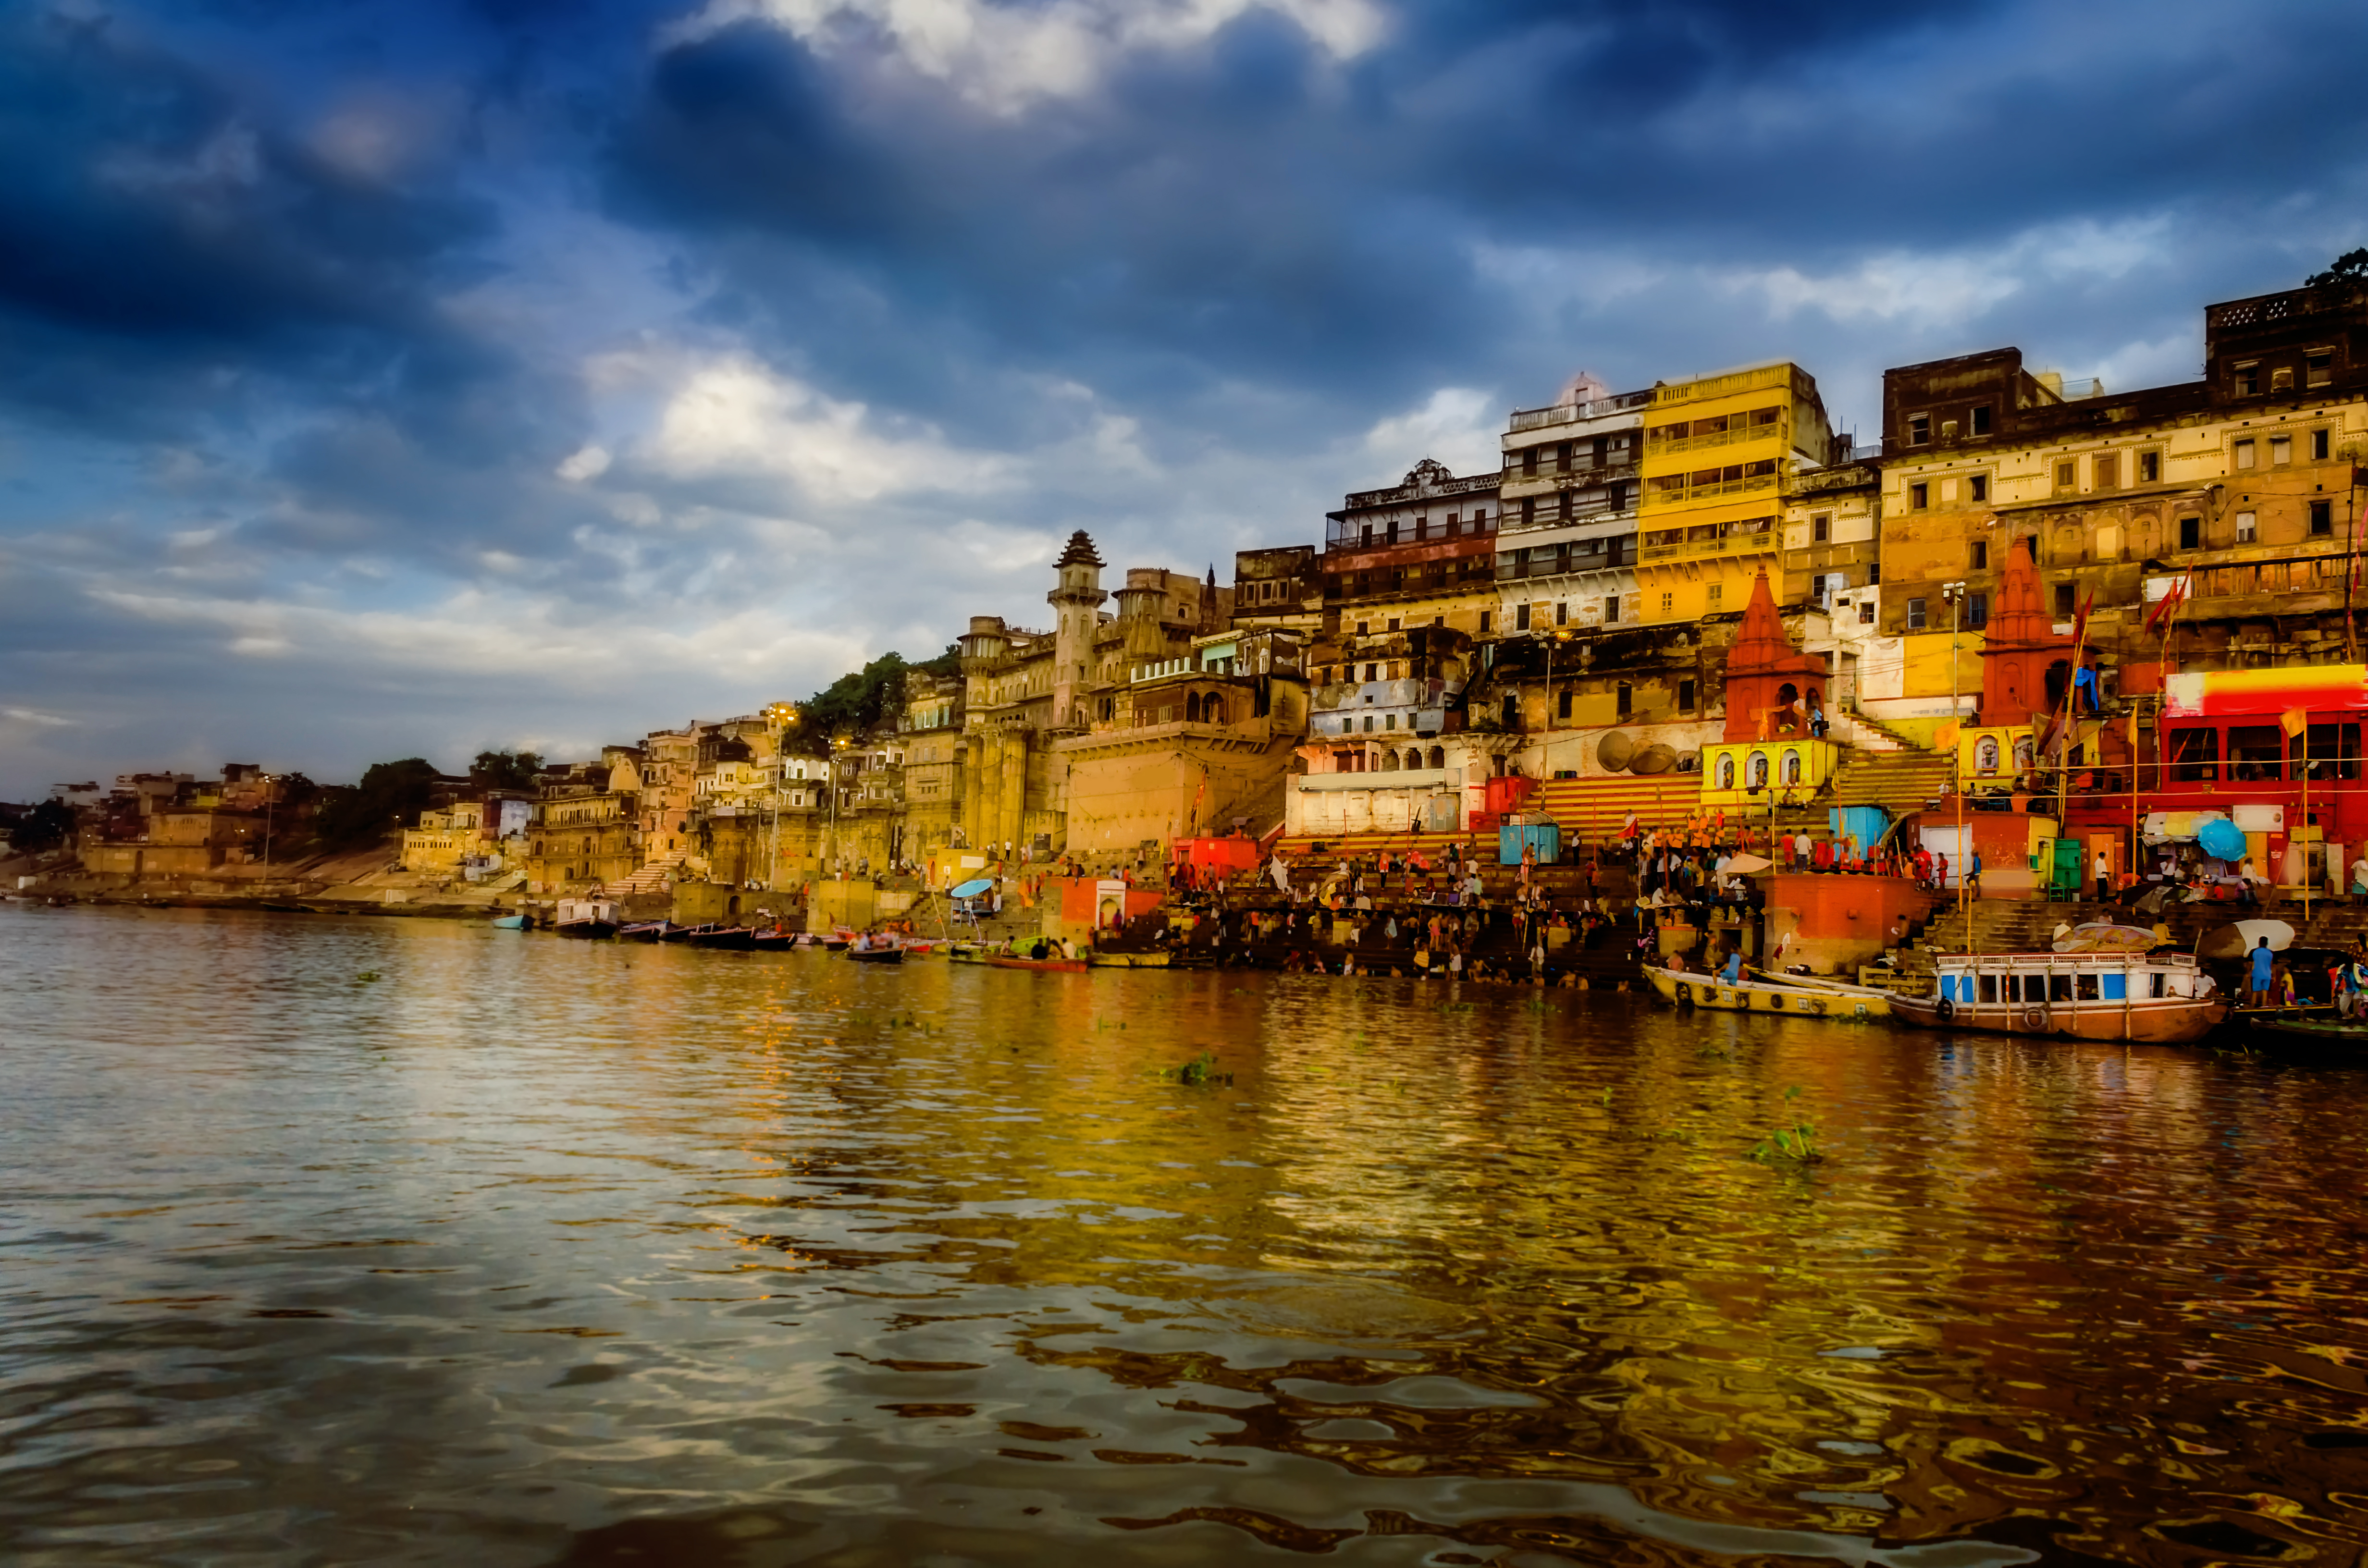 5 Things to Know Before Visiting the Kashi Vishwanath Temple